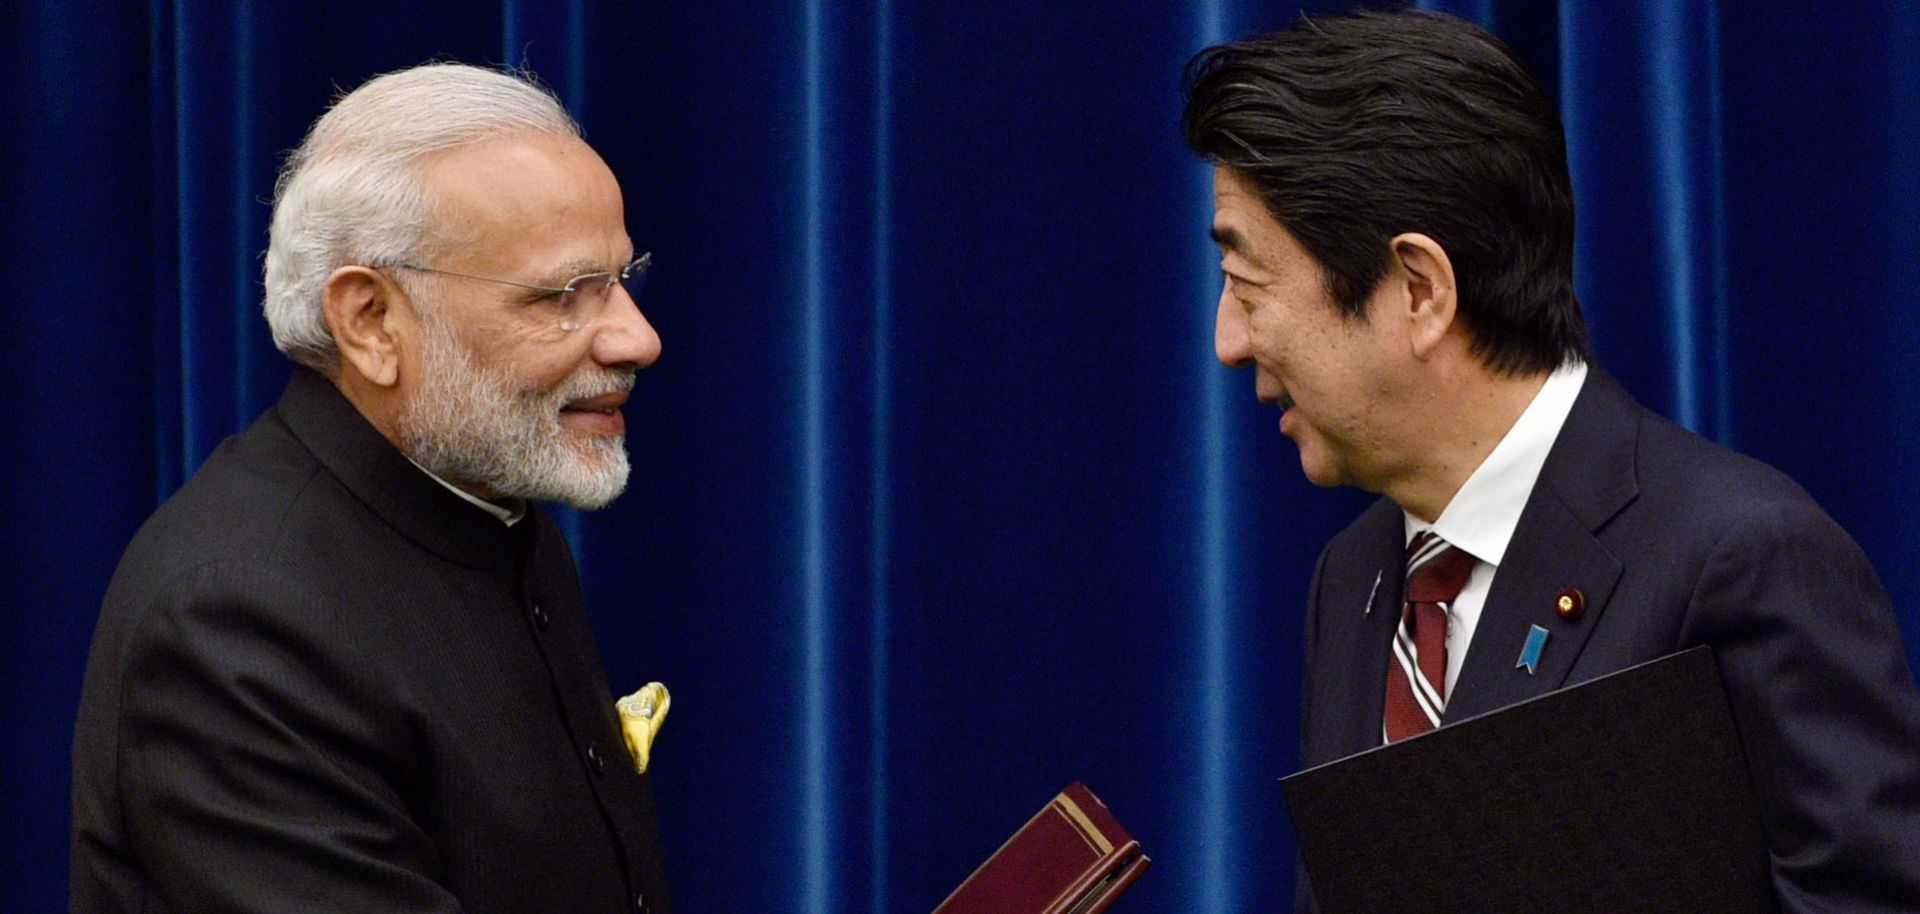 Led by premiers Narendra Modi (l) and Shinzo Abe, India and Japan have boosted their partnerships in several strategic areas, a process that is sure to continue in the future.